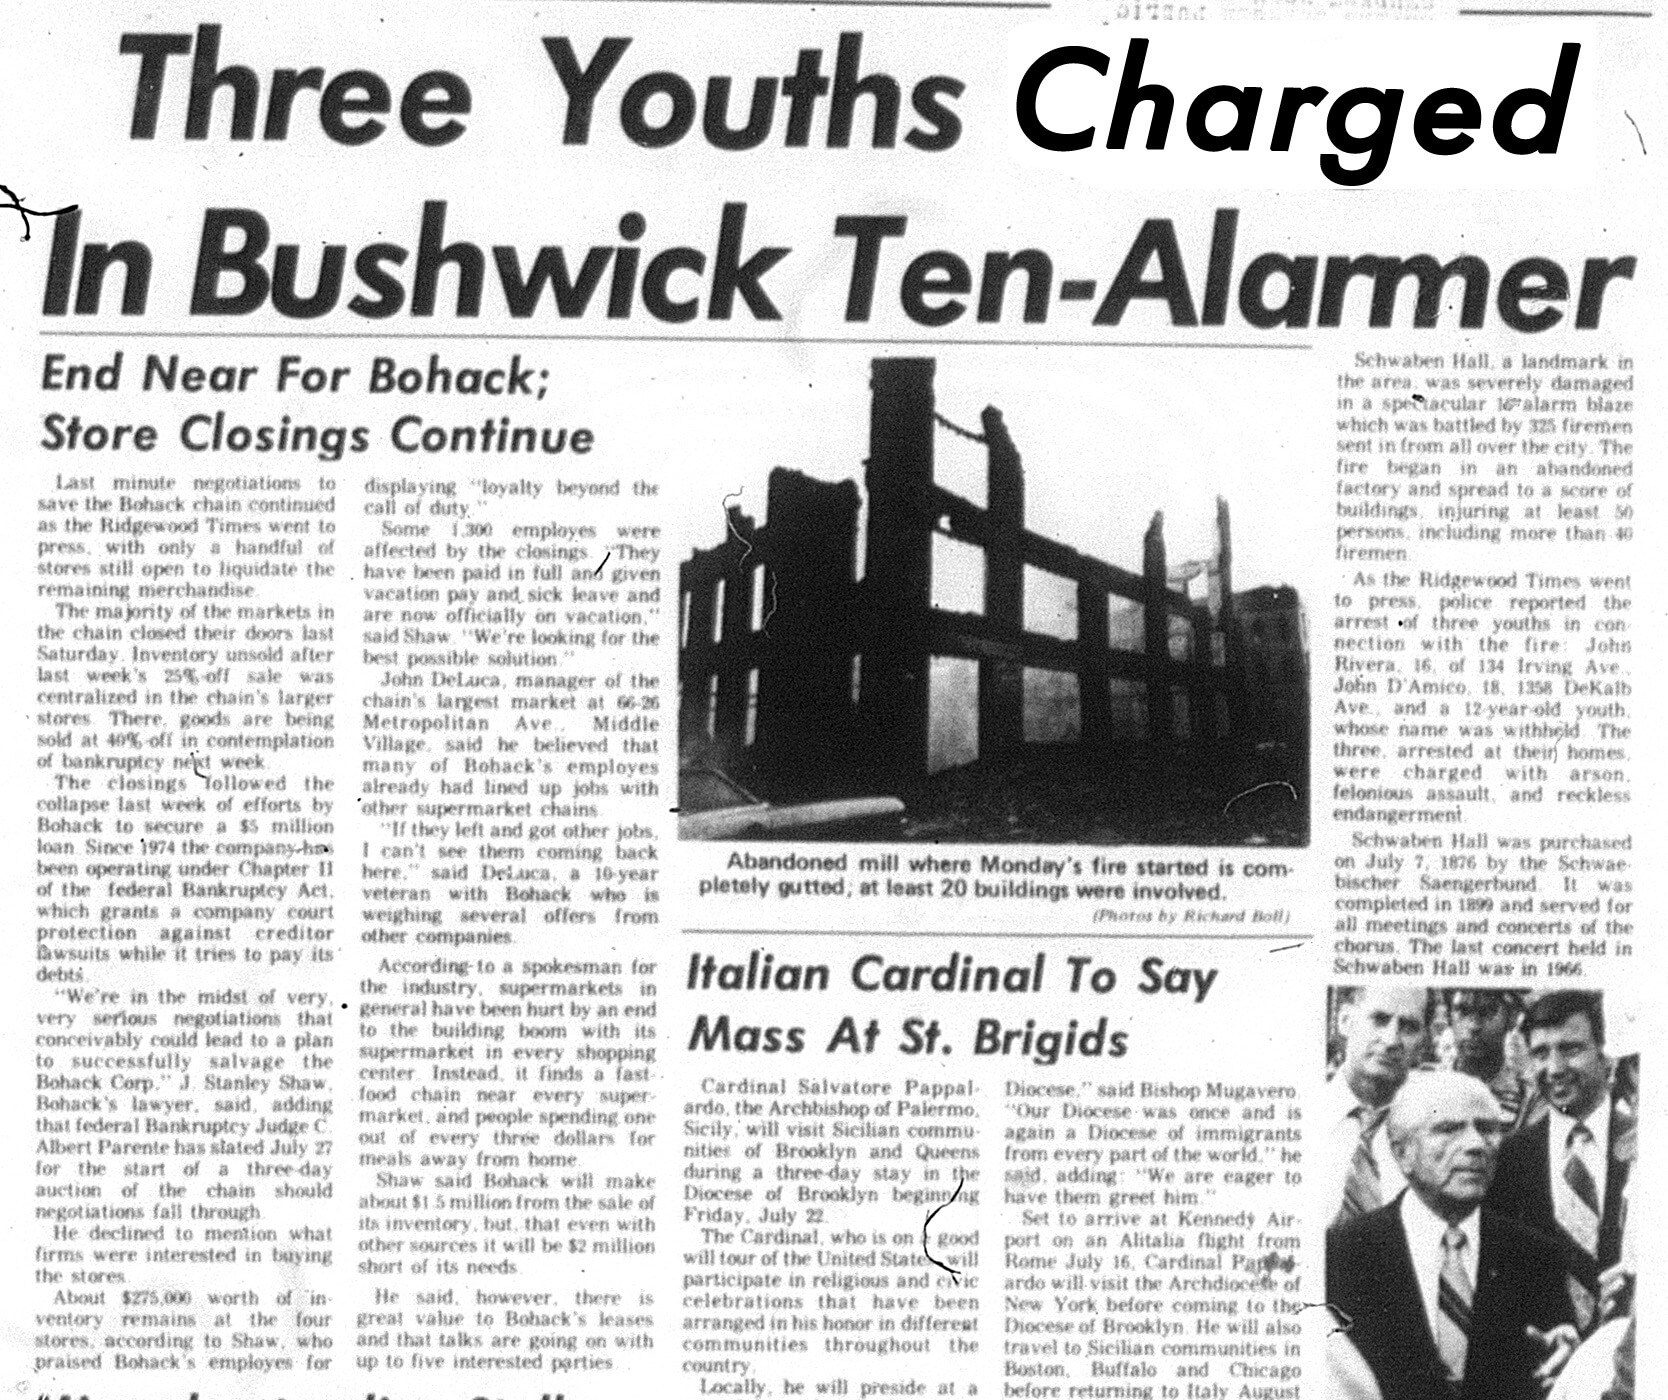 Huge fire made Ridgewood Times headlines in the sweltering summer of '77: Our Neighborhood, The Way it Was